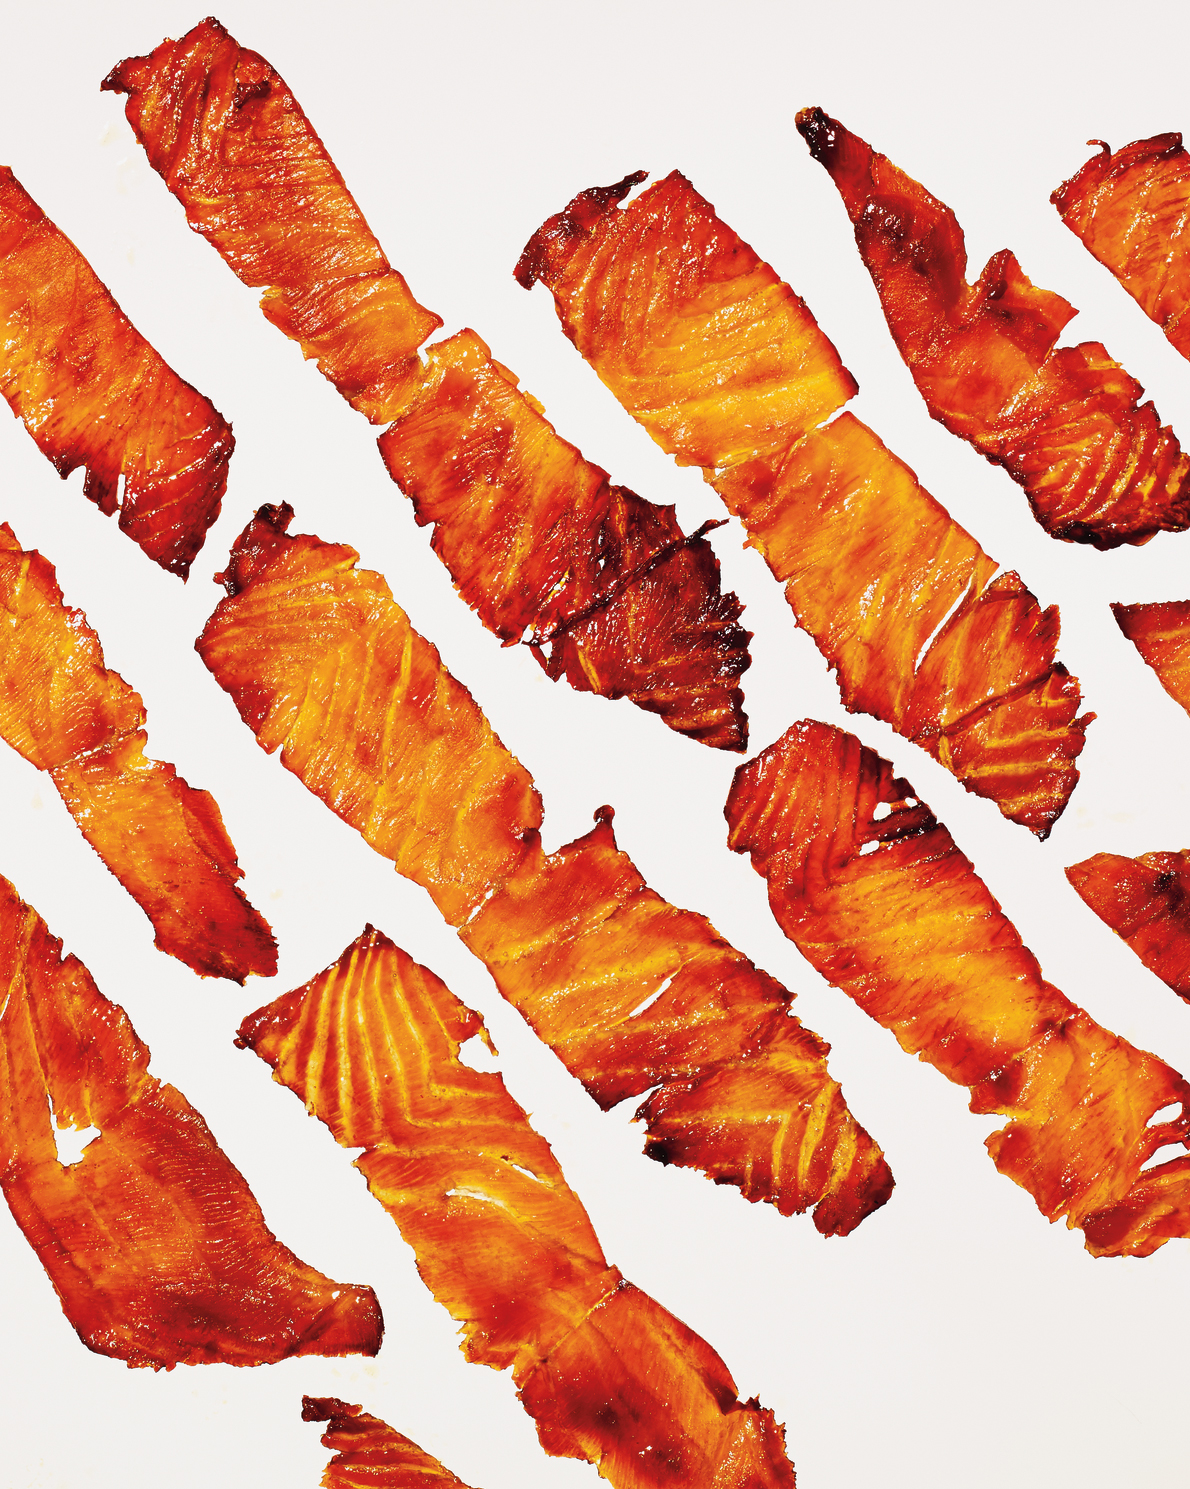 salmon-bacon-appetizer-320-d112293.jpg